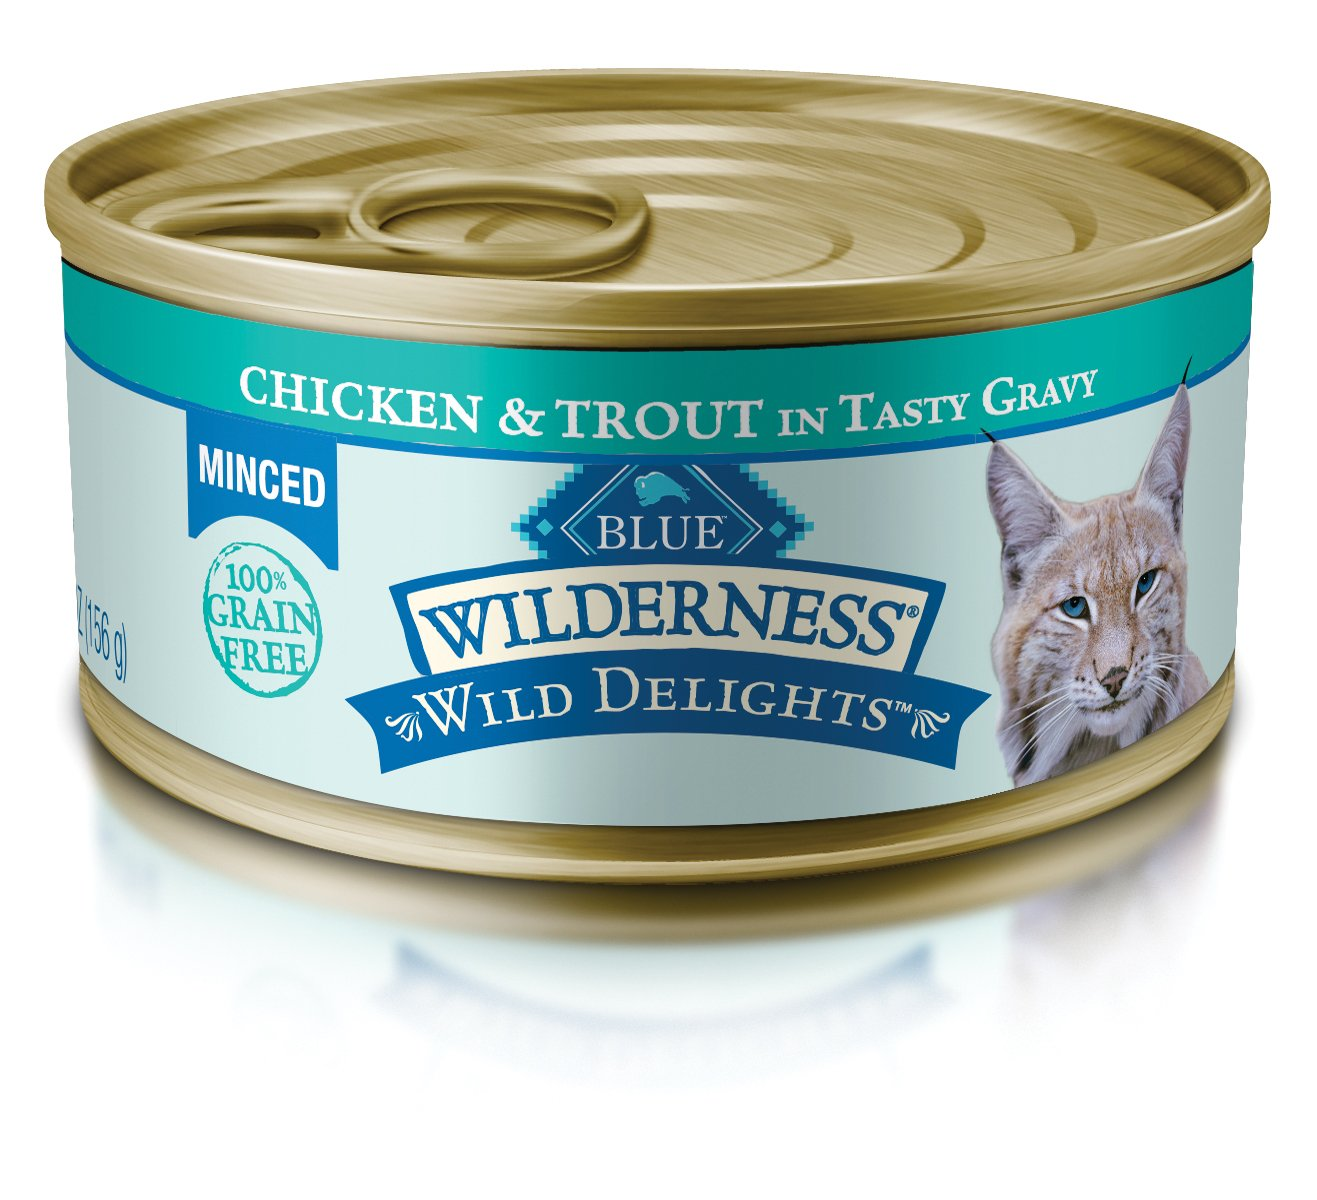 Blue Wilderness Wild Delights Adult Grain Free Minced Chicken & Trout In Tasty Gravy Wet Cat Food 5.5-Oz (Pack Of 24) by Blue Buffalo